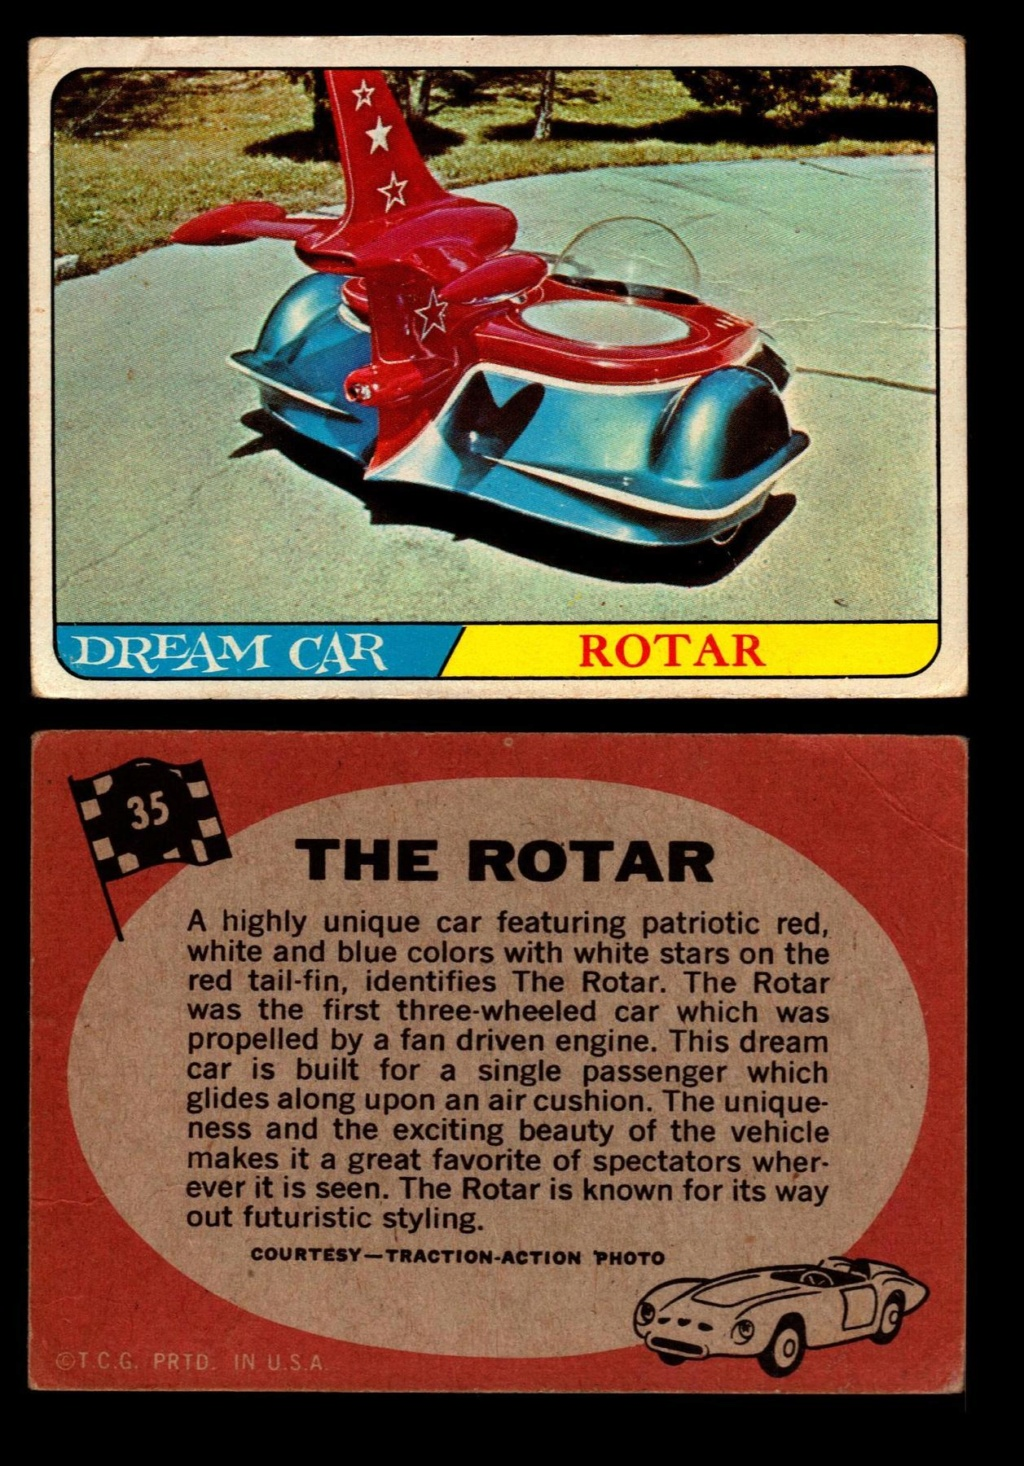 Hot Rods Topps - Vintage Trading Cards 1968 - Custom car - Dragster - Racer - Dream car - Barris Kustom City - Ed Roth Darrill Starbird, Gene Winfield, Bill Cuchenberry - Page 2 35_bea10